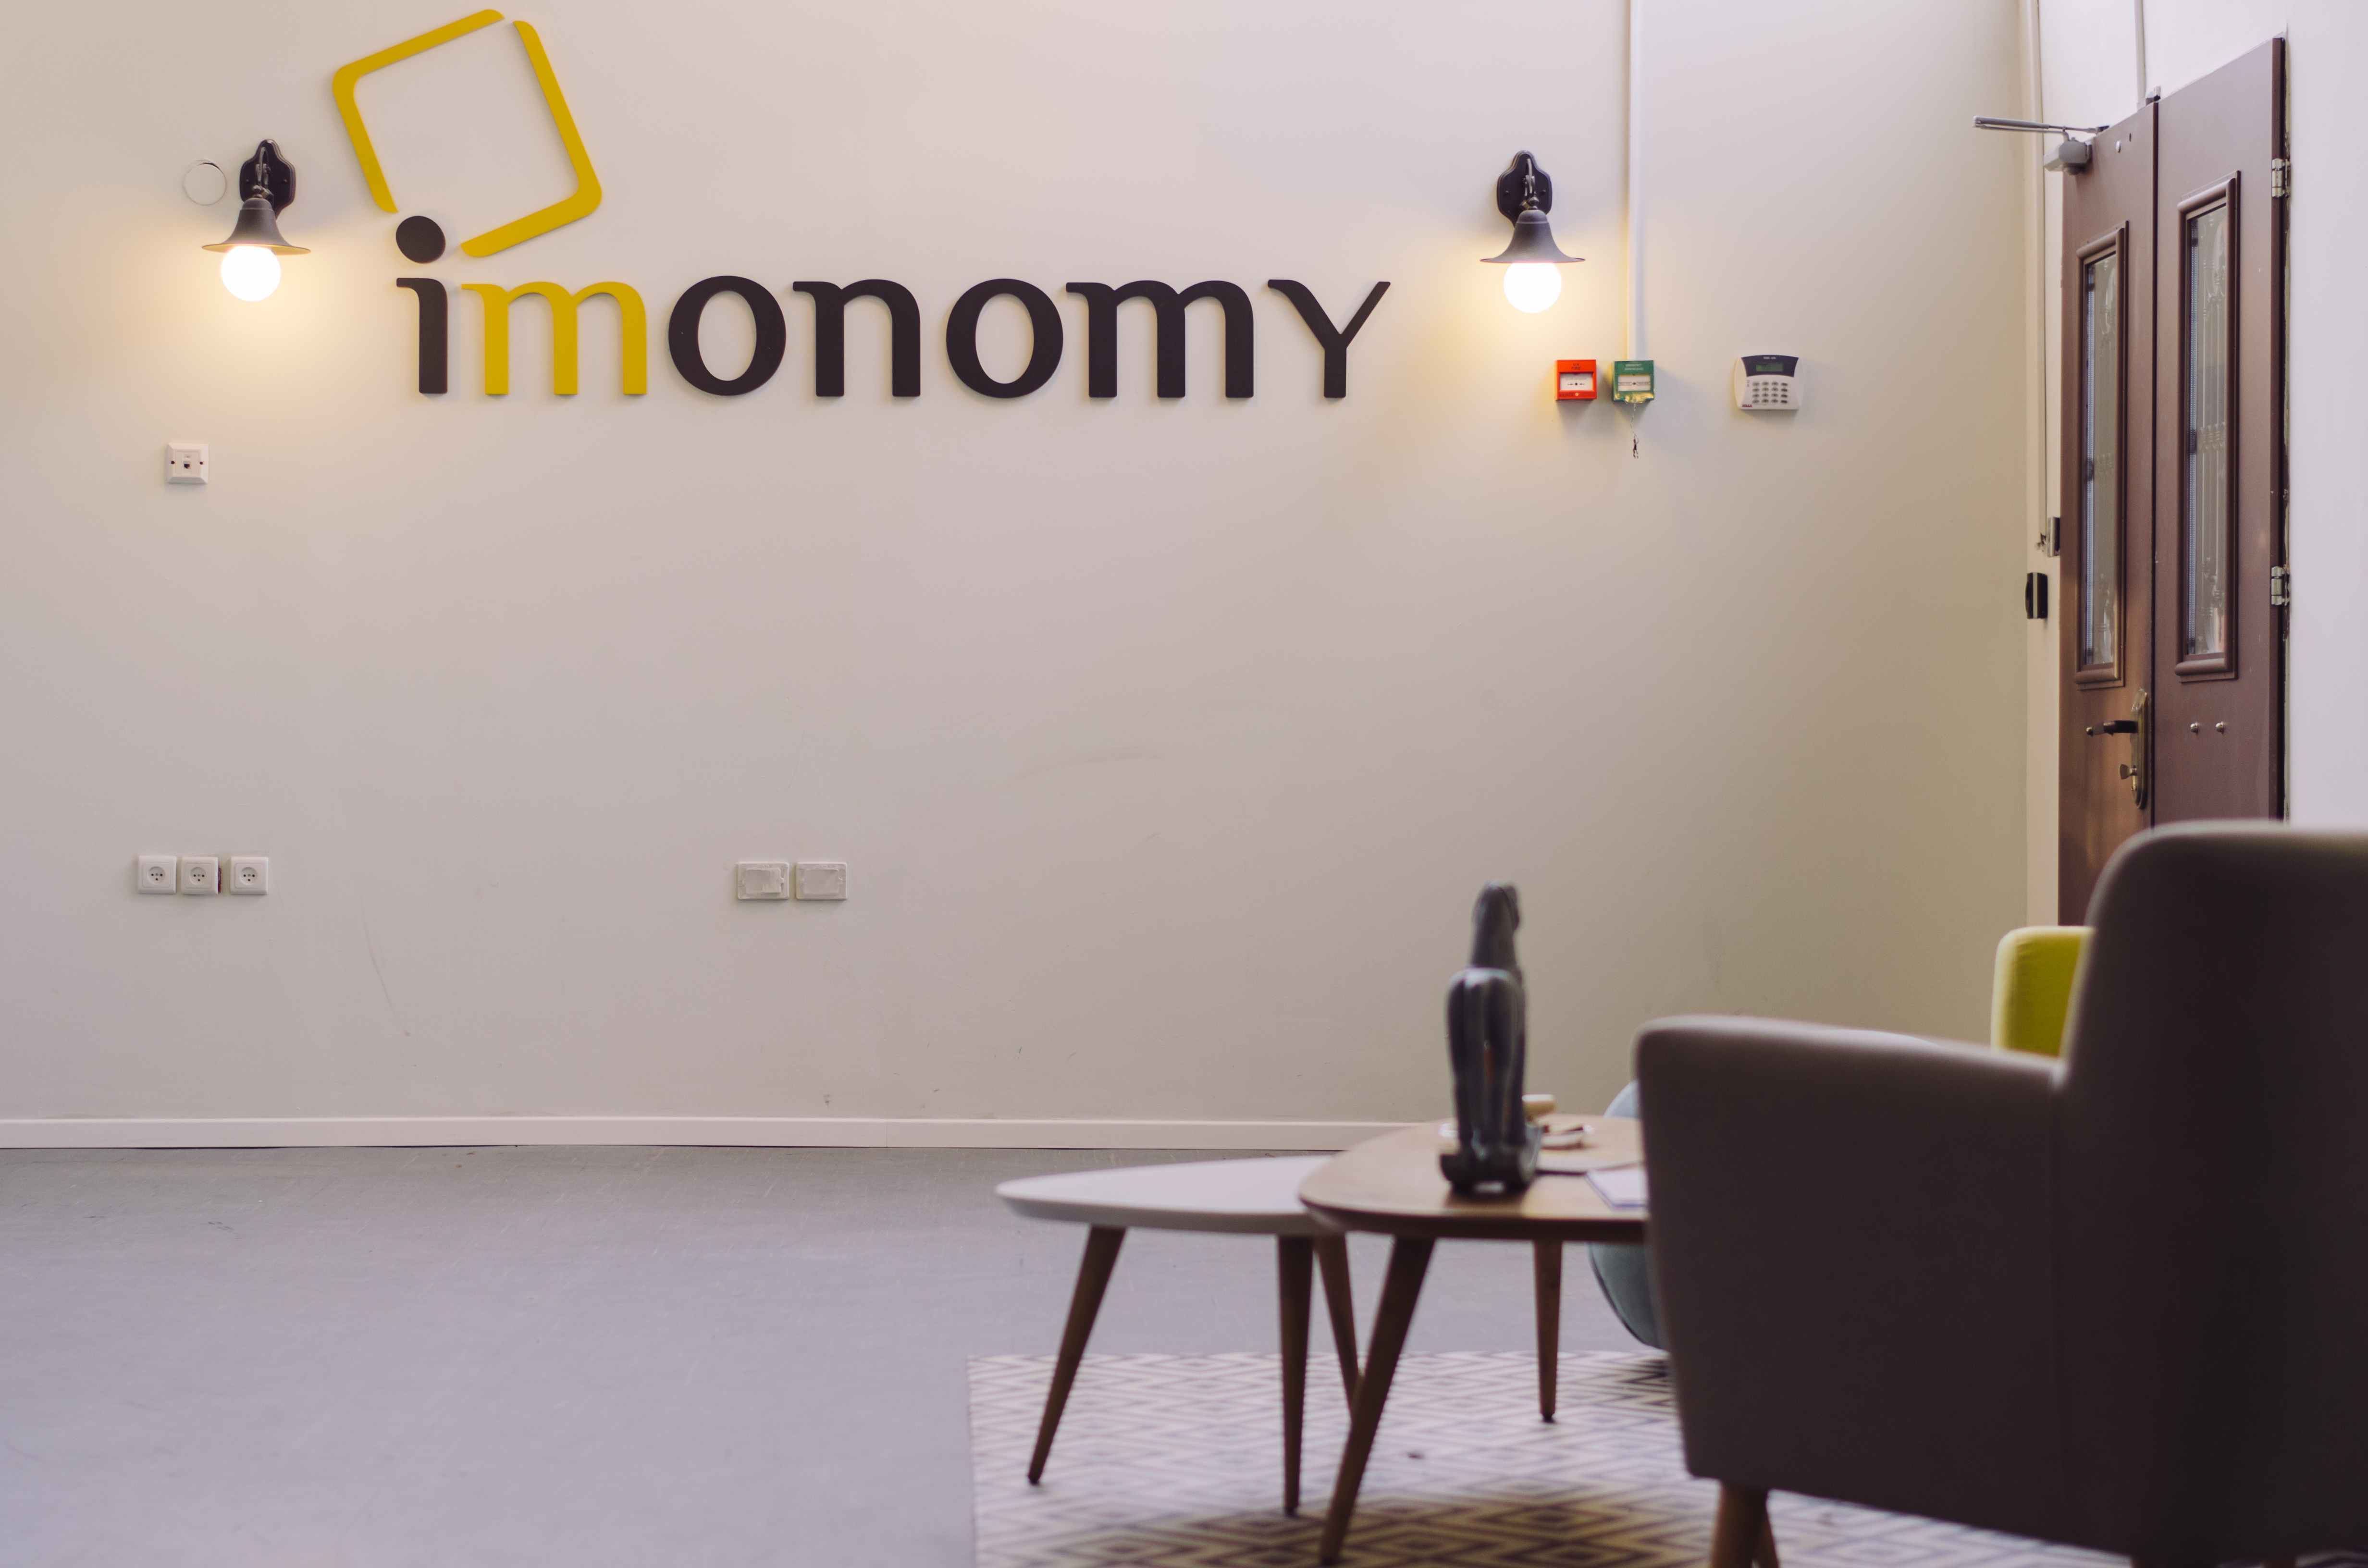 Imonomy Review- In-Image Advertising Network